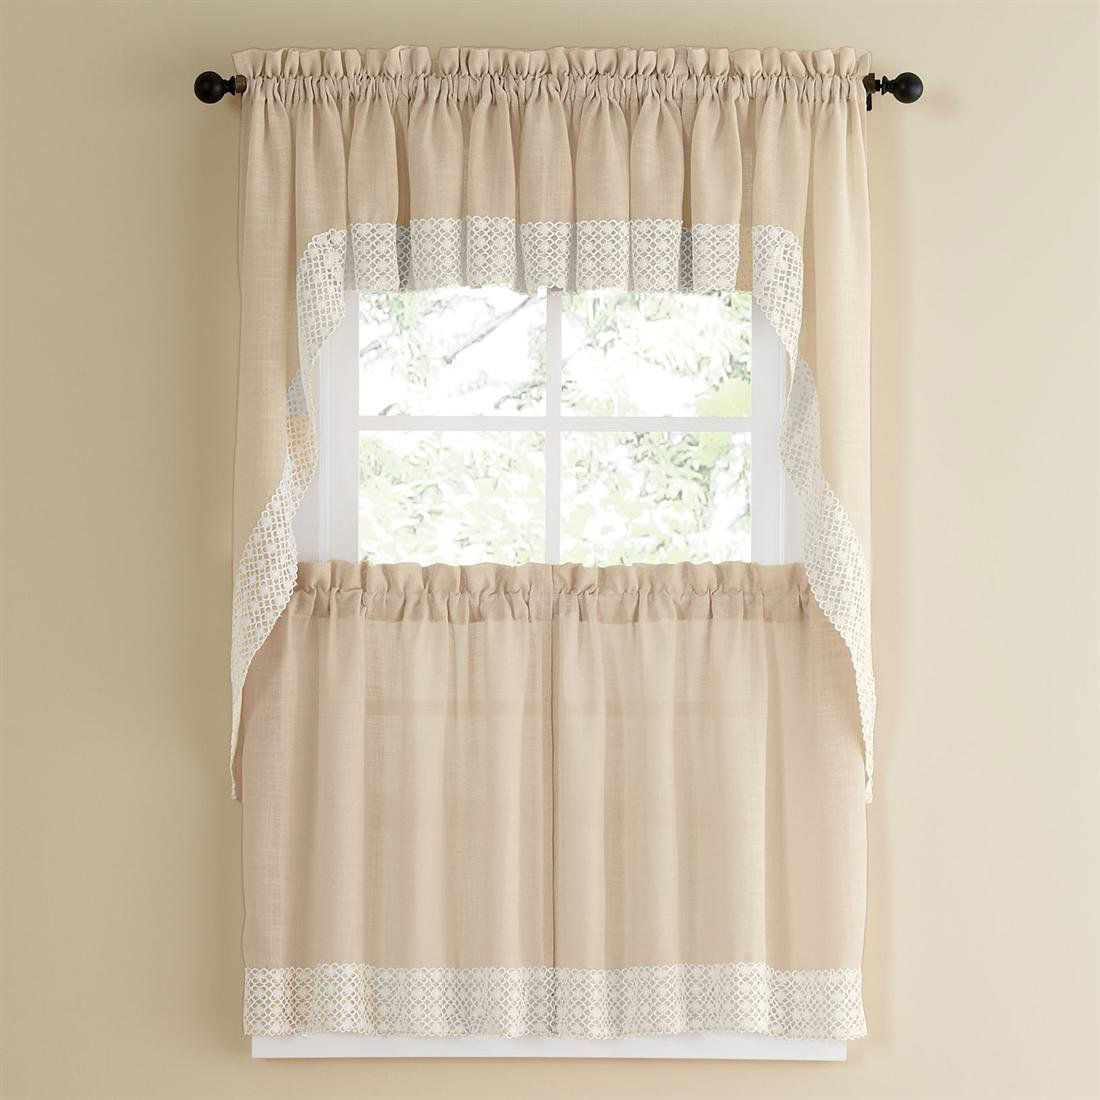 24 Inch Kitchen Curtains French Vanilla Country Style Curtain Parts With White Daisy Lace